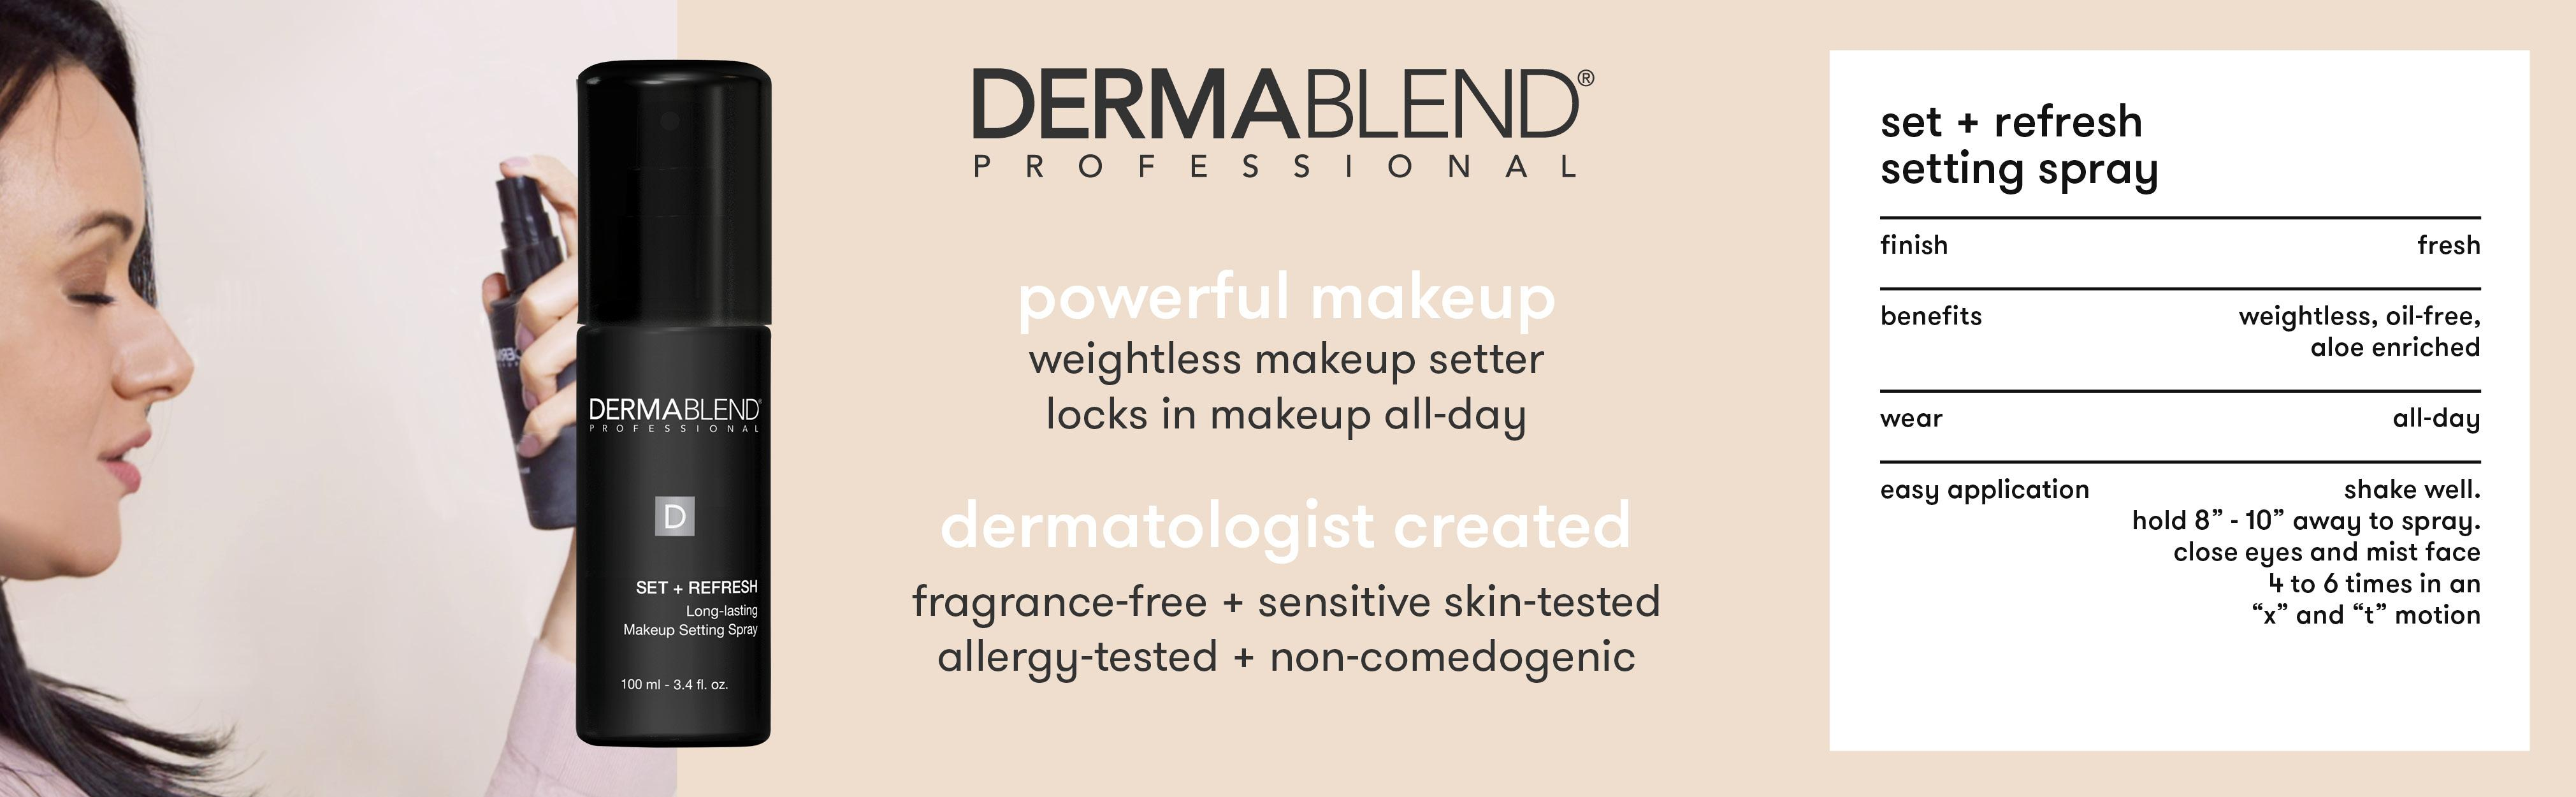 Amazon.com: Dermablend Makeup Setting Spray, 3.4 Fl Oz: Luxury Beauty